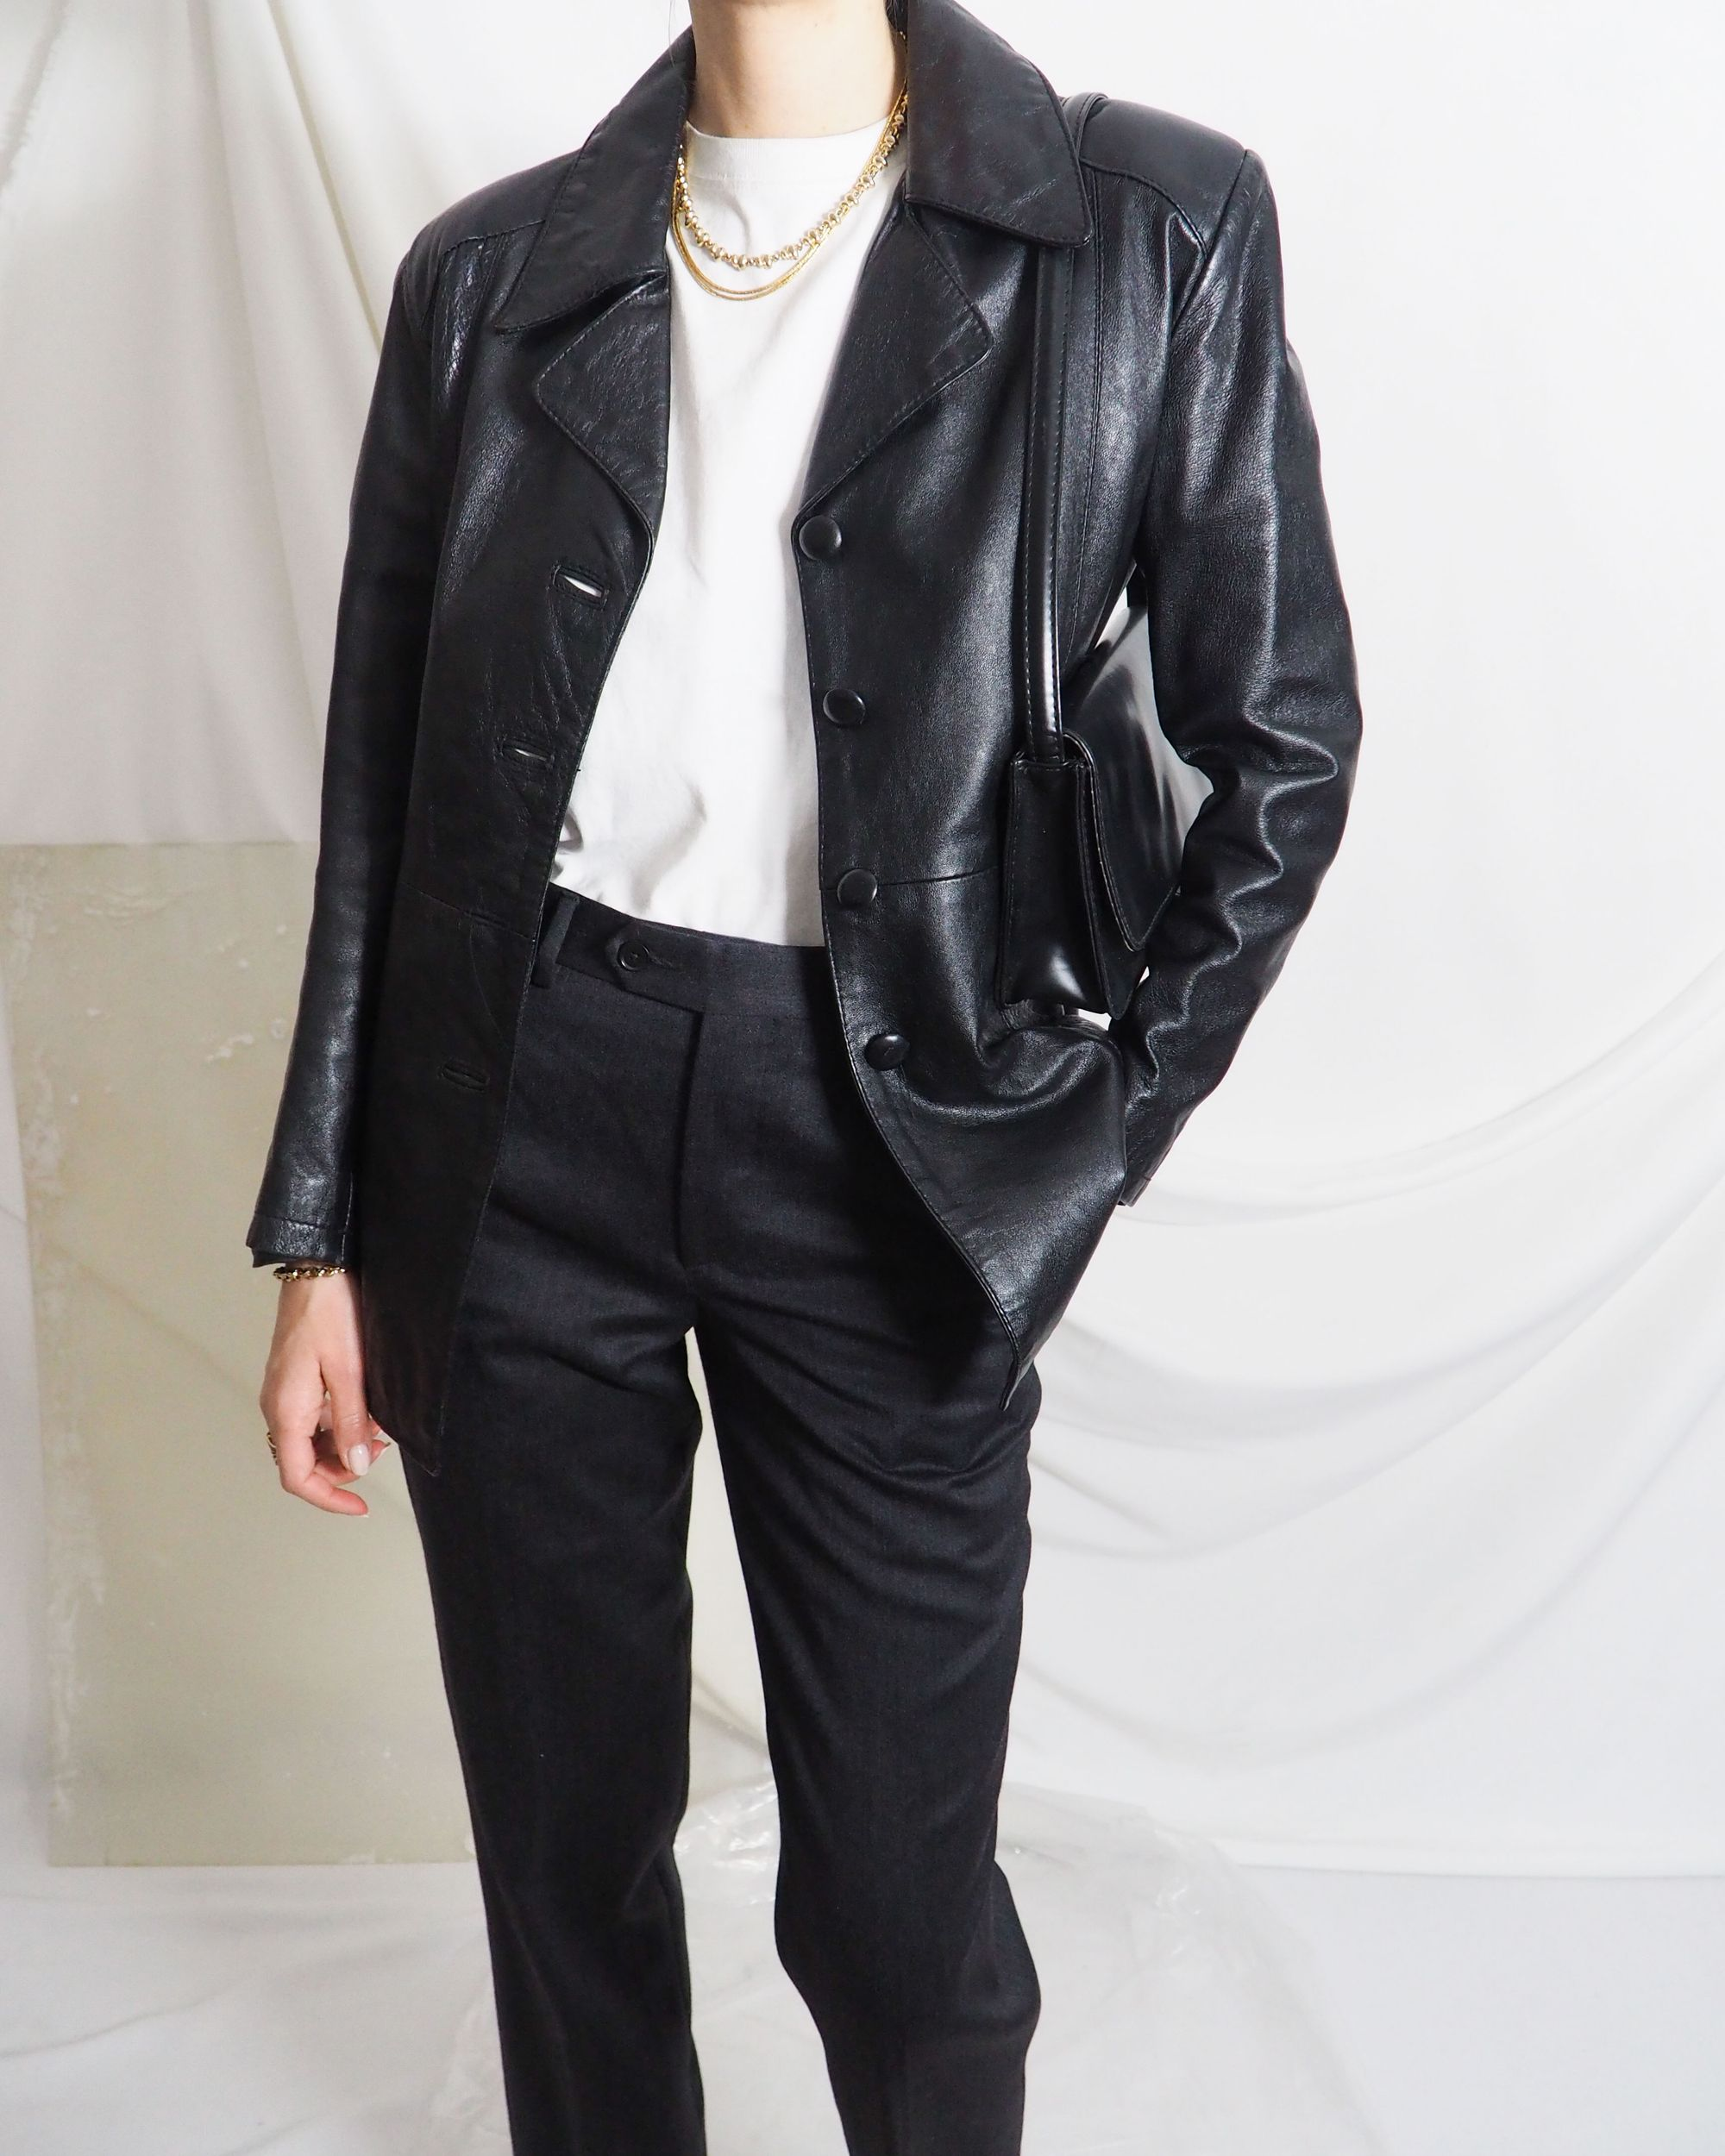 Vintage Black Leather Blazer Jacket With Wool Trousers A White Tee And Some Gold Untit In 2020 Vintage Clothing Online Online Shopping Clothes Leather Blazer Jacket